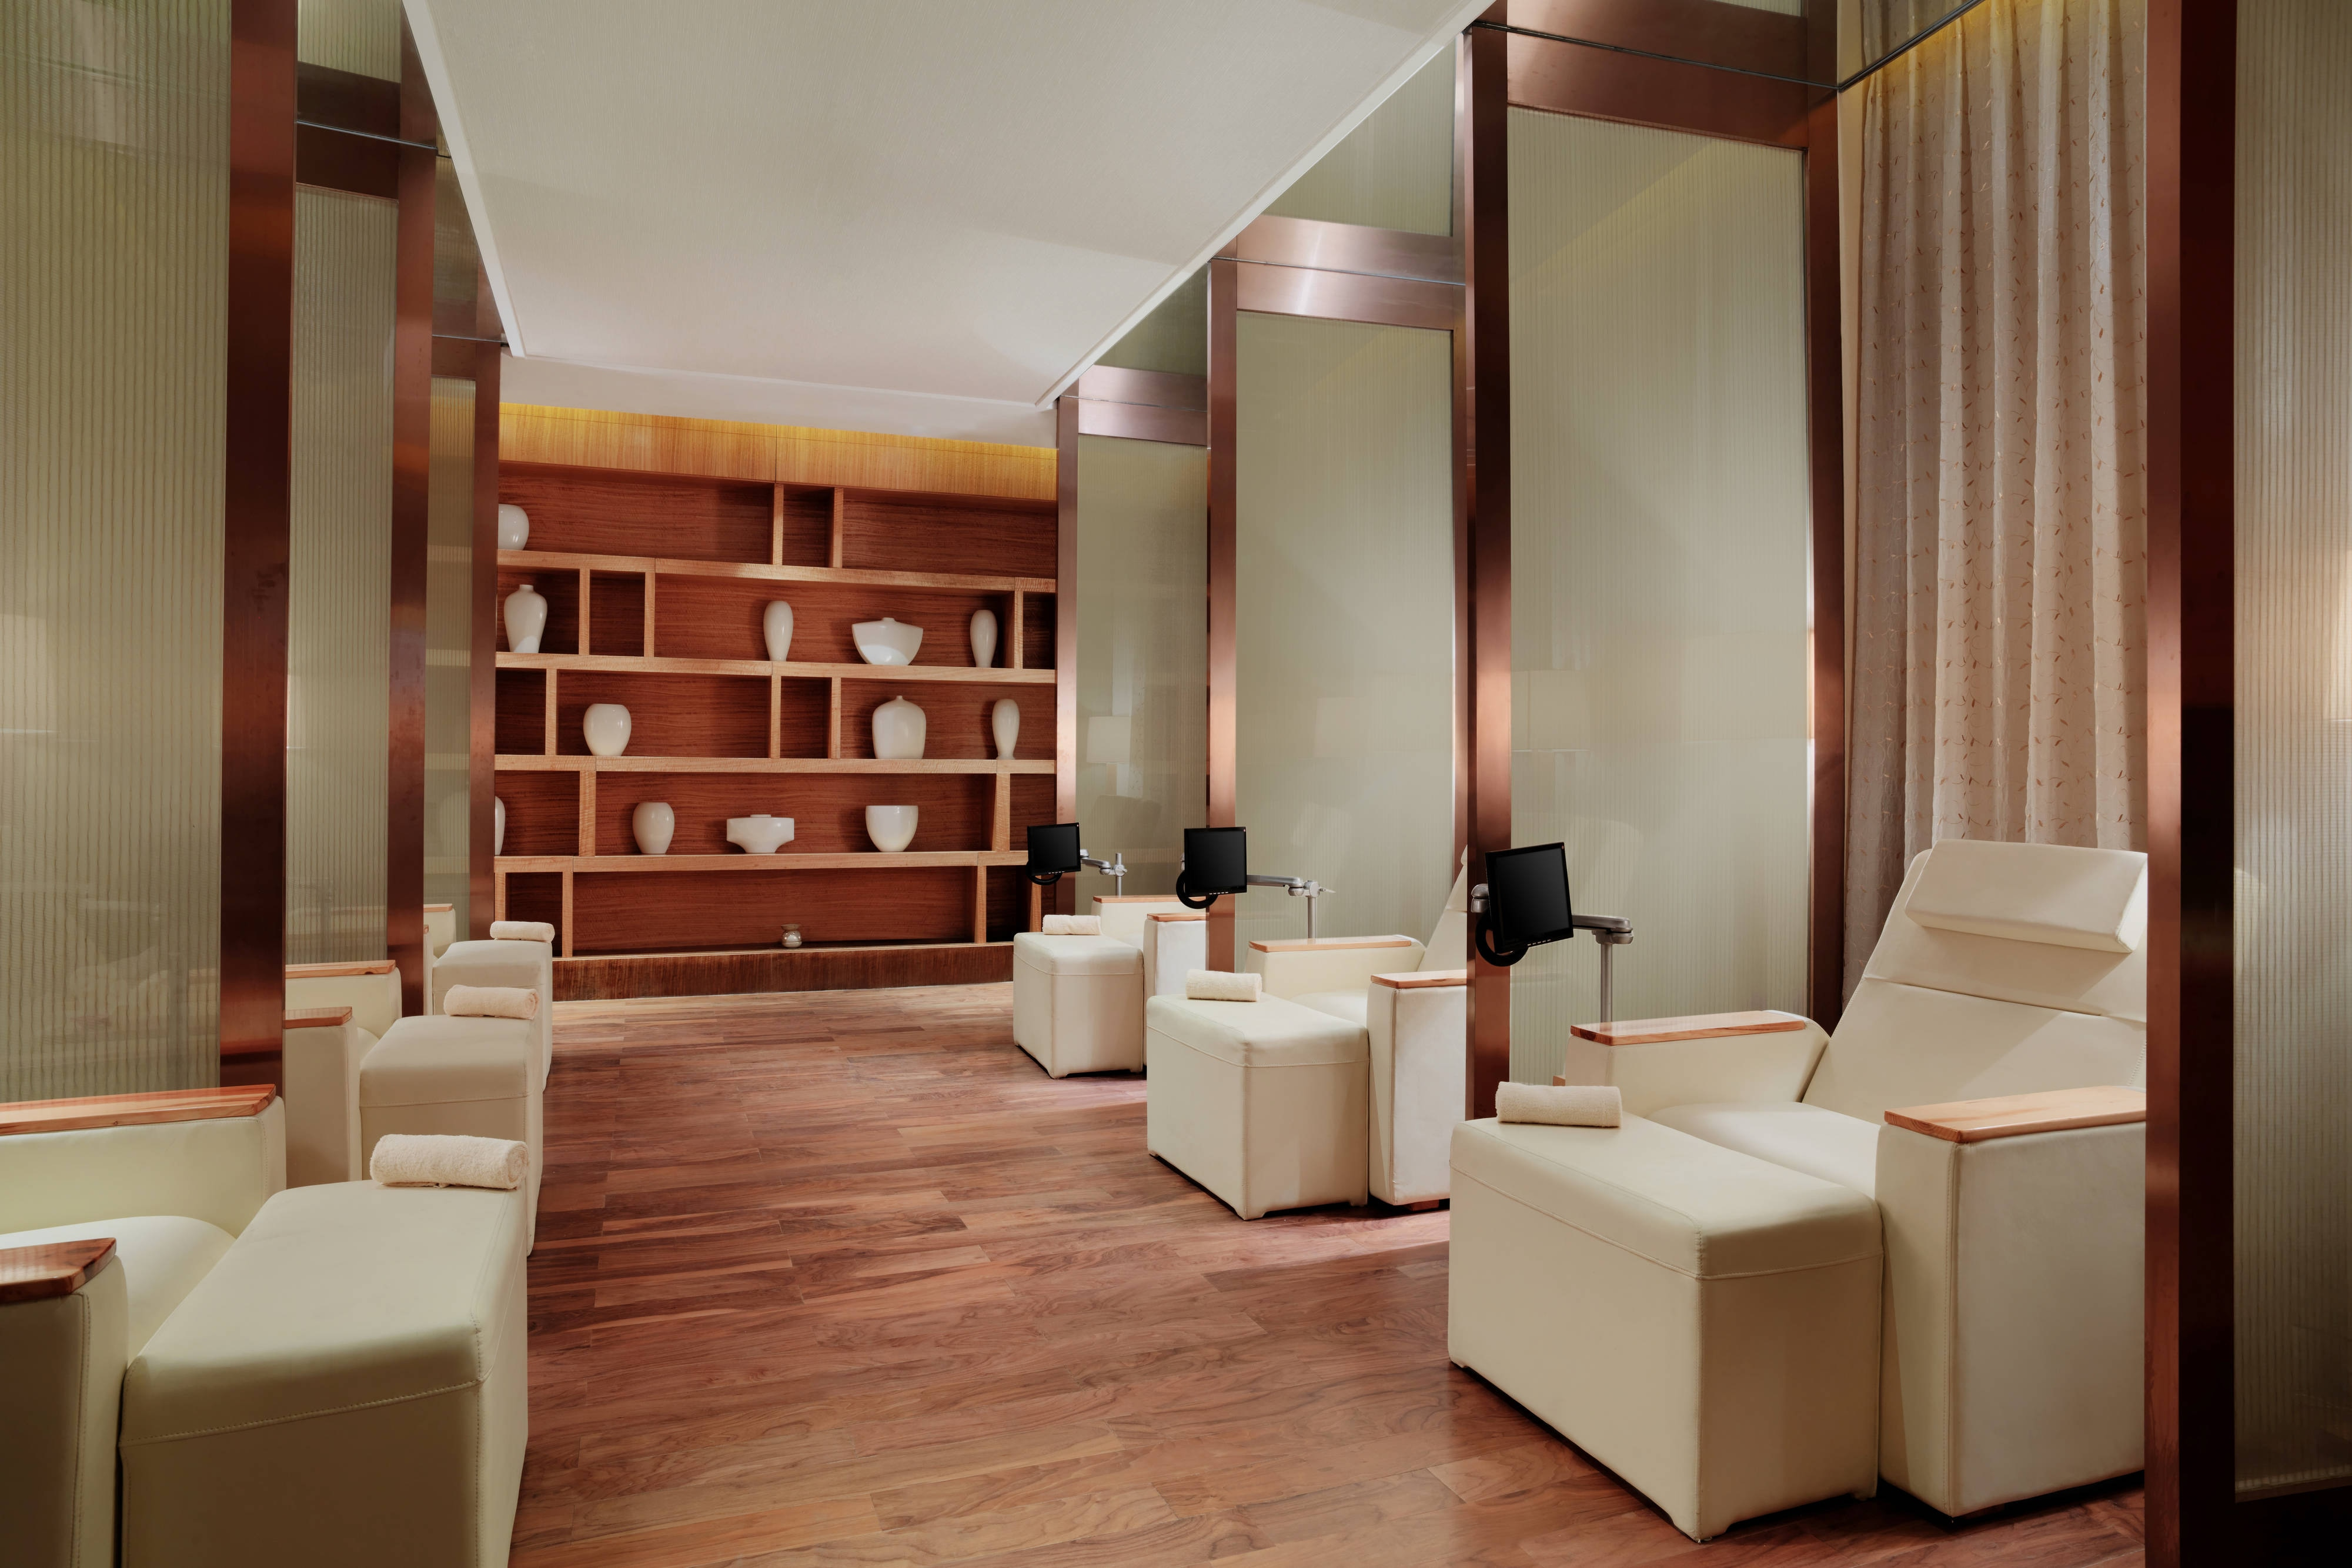 The Revive Spa - Foot Massage Area